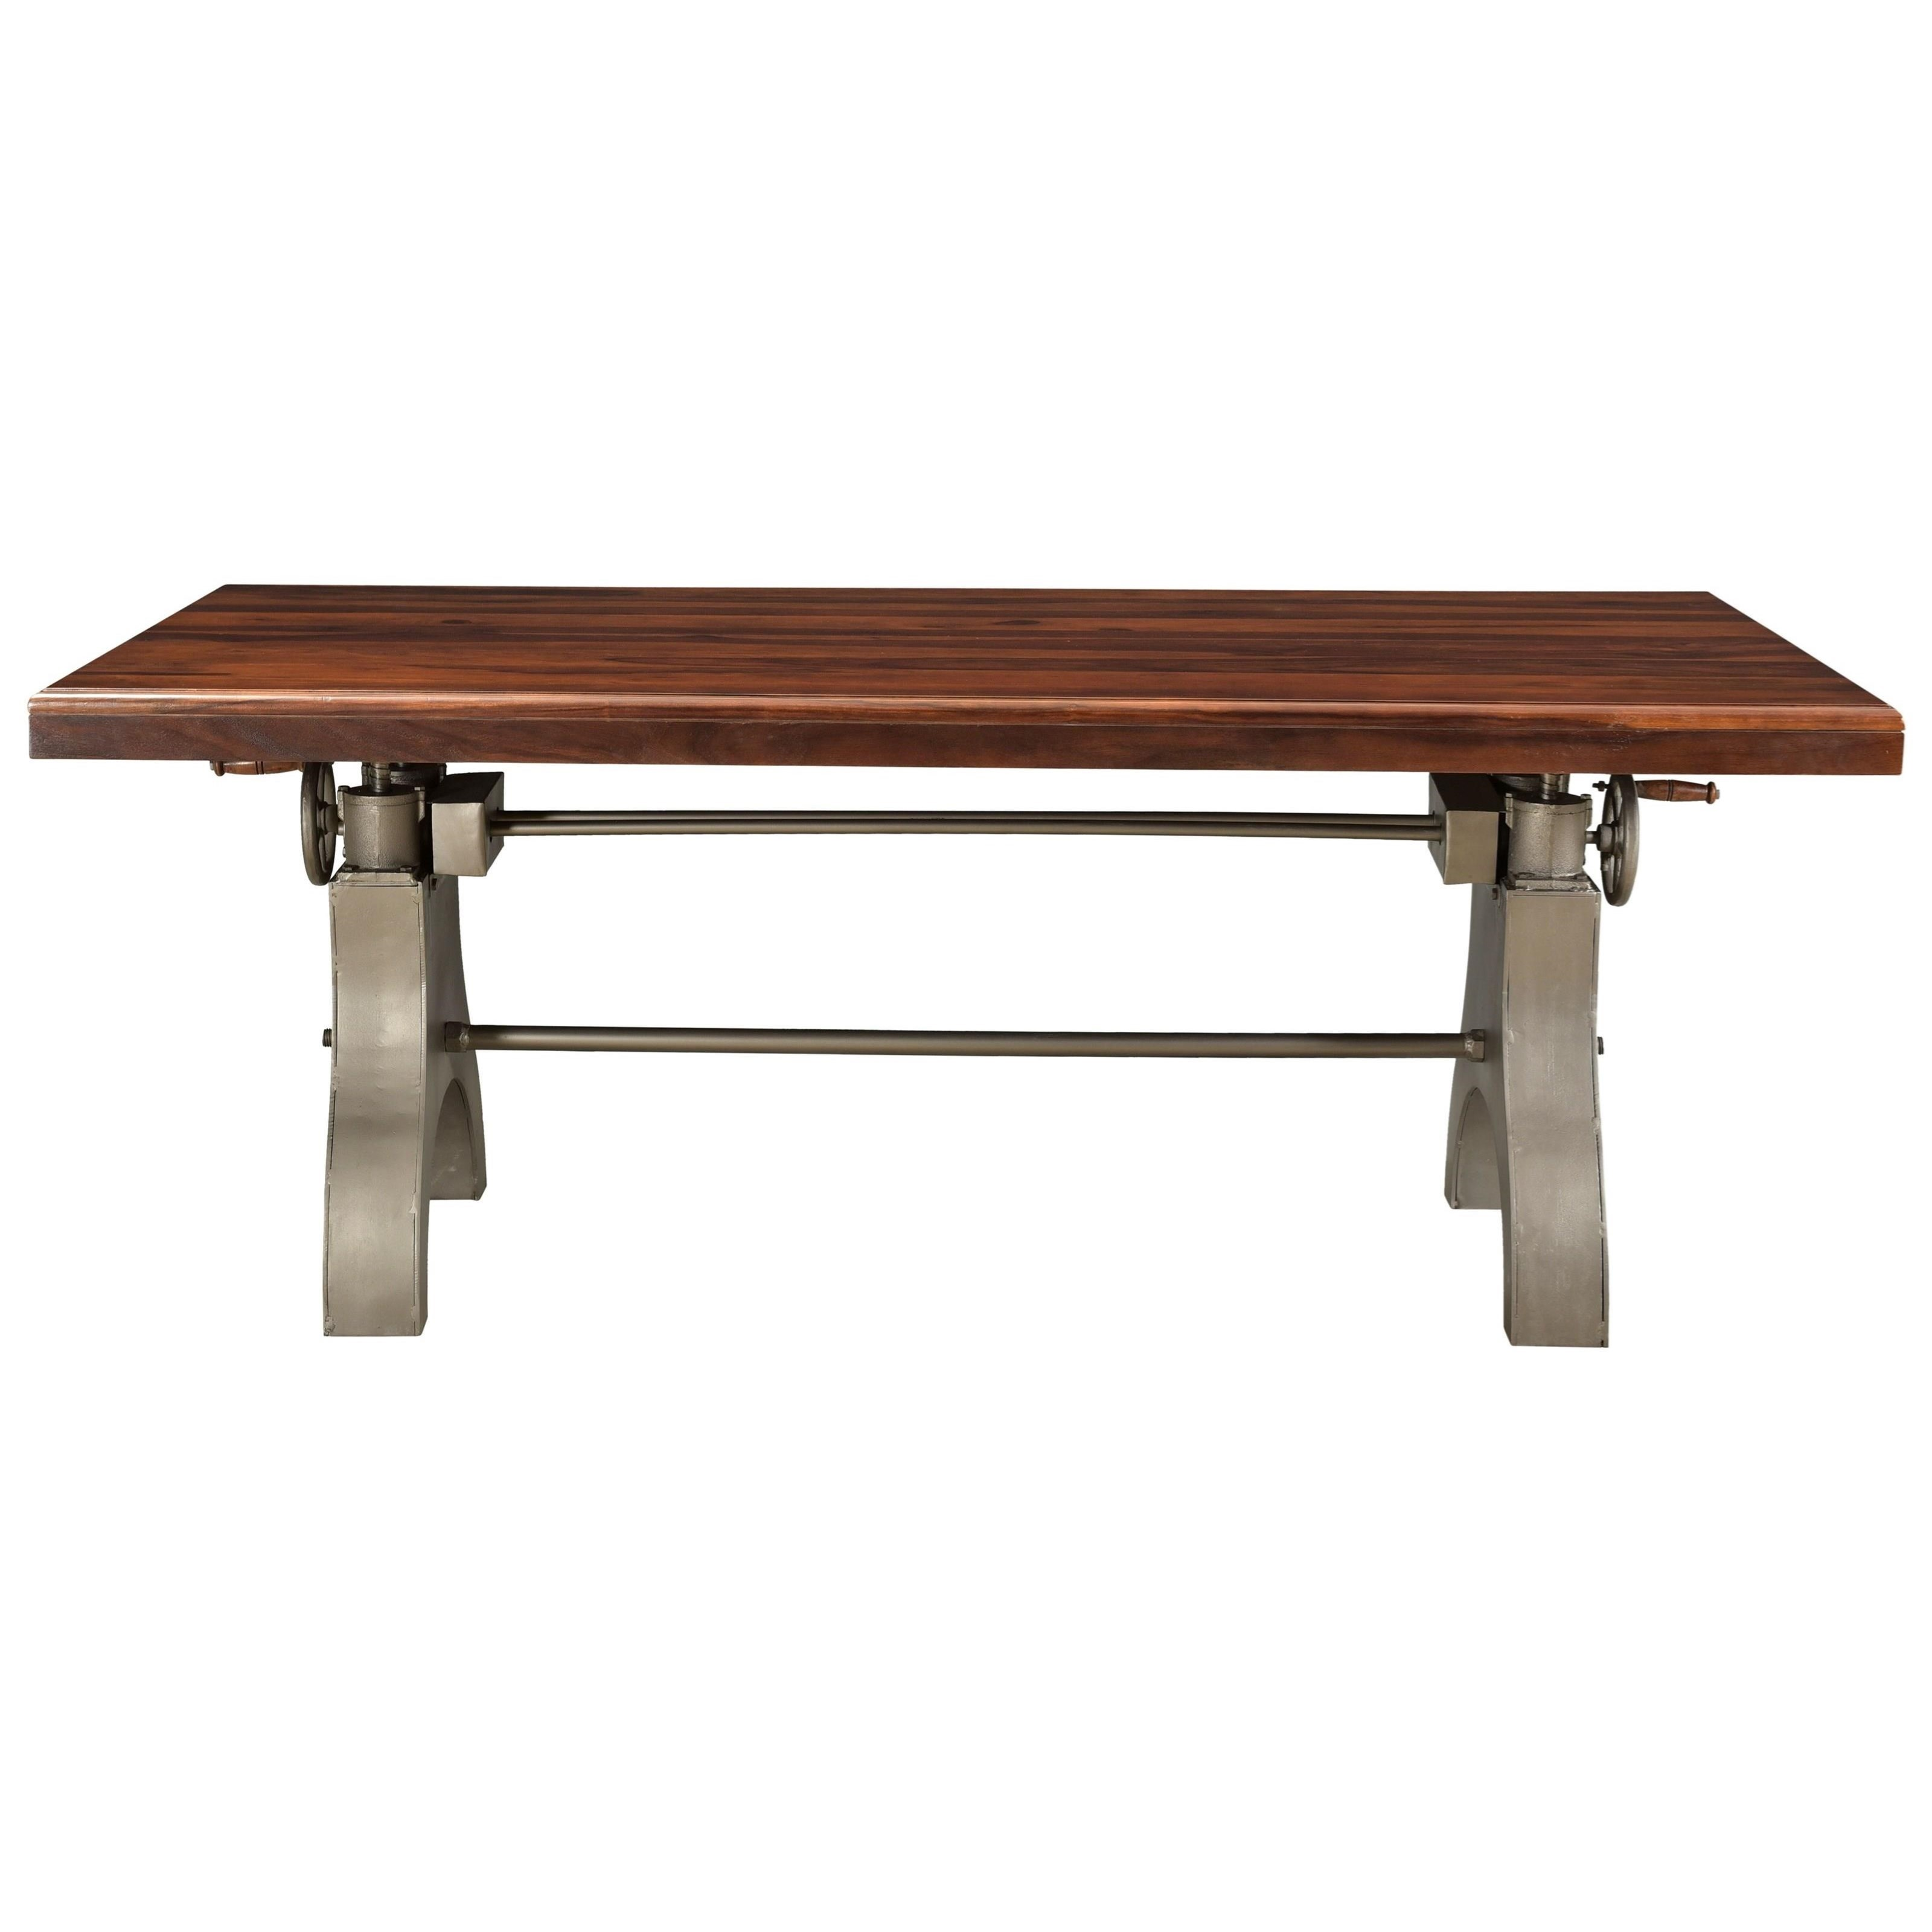 Tacoma Adjustable Dining Table  by C2C at Walker's Furniture